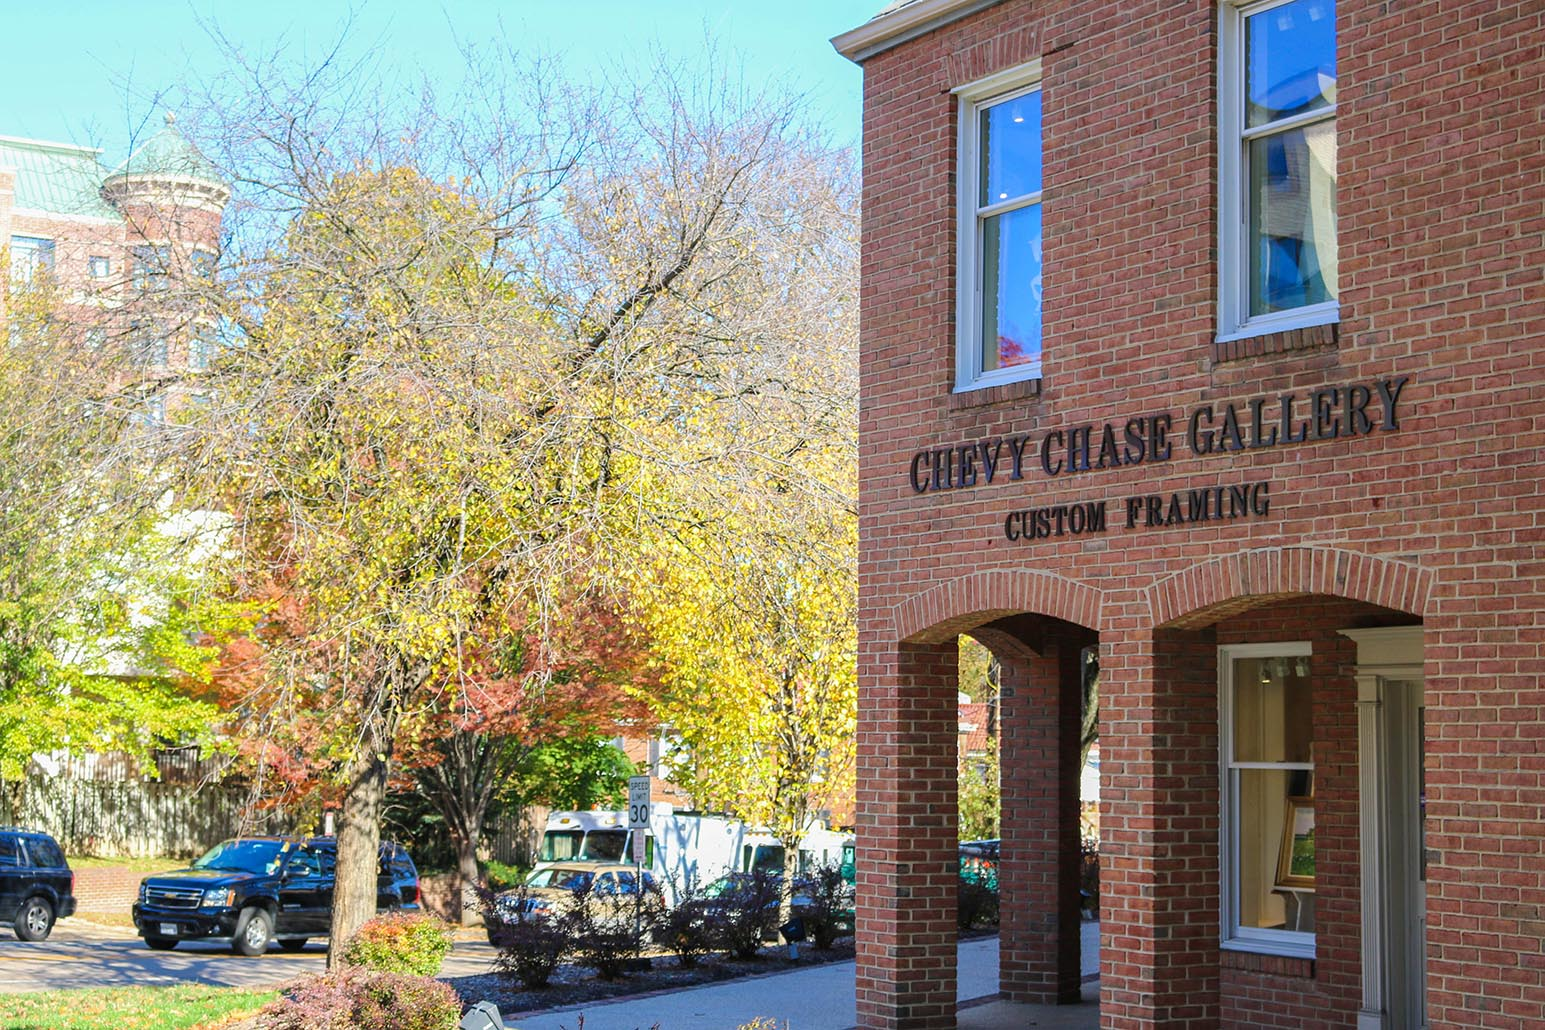 Chevy Chase Gallery in Chevy Chase, Washington, DC